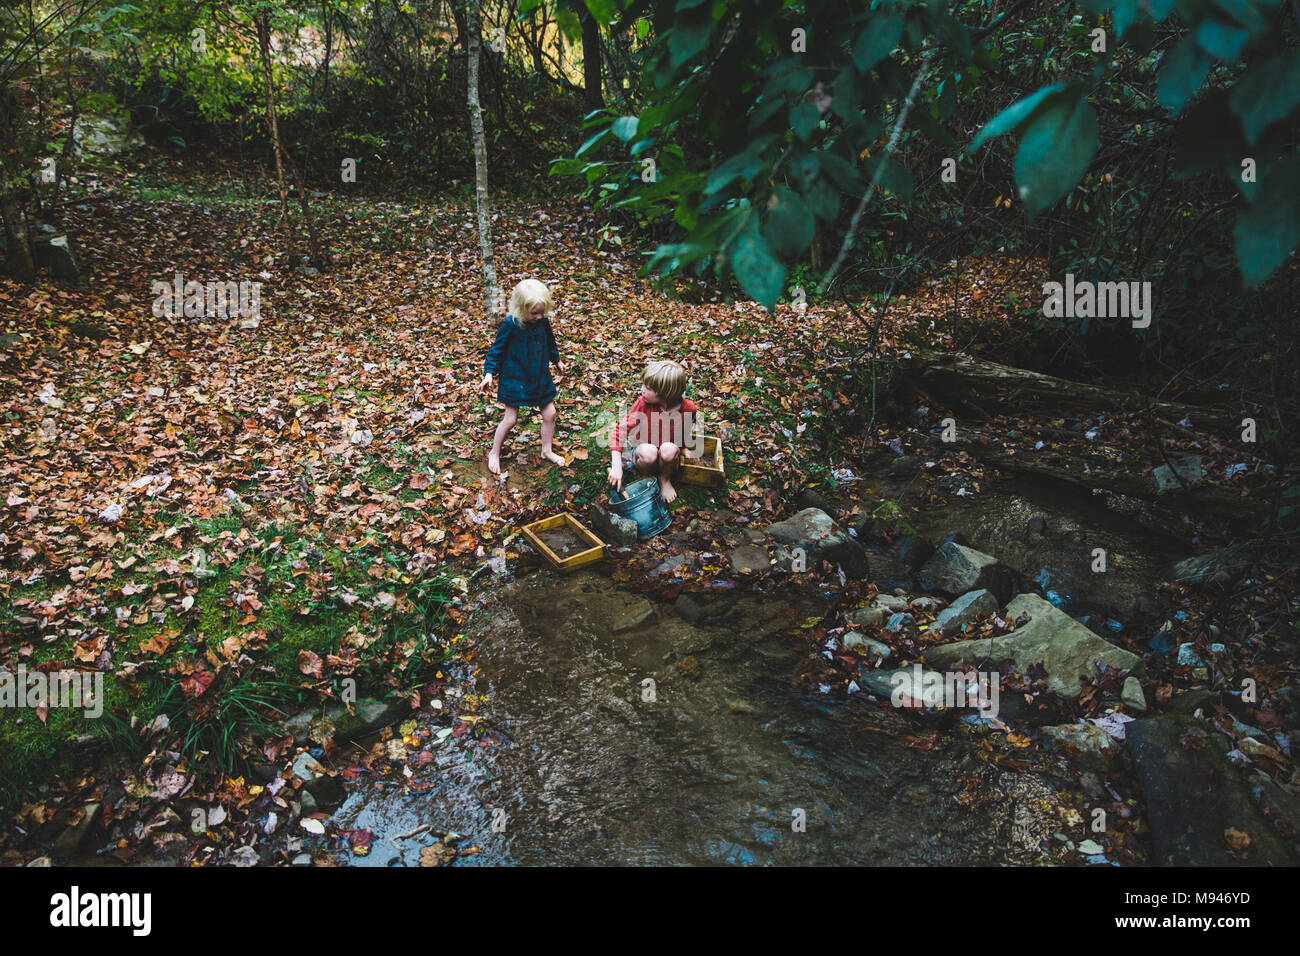 Children using panning buckets next to river - Stock Image